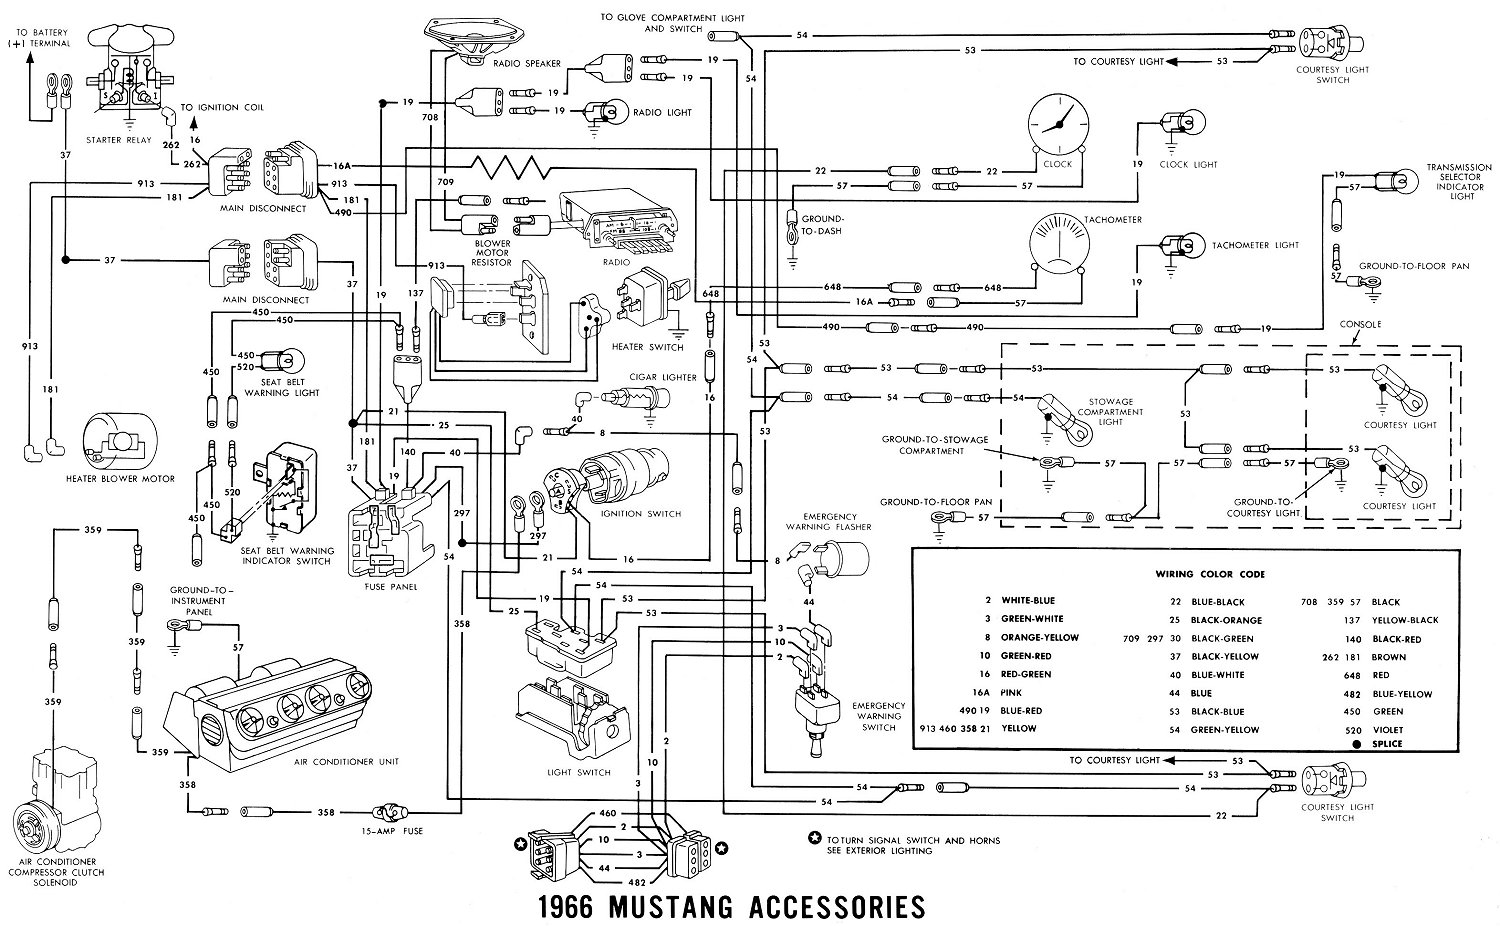 2013 Mustang Speaker Wiring Diagram Opinions About Wiring Diagram \u2022 10 Mustang  Wiring Schematics 2014 Mustang Wiring Schematics